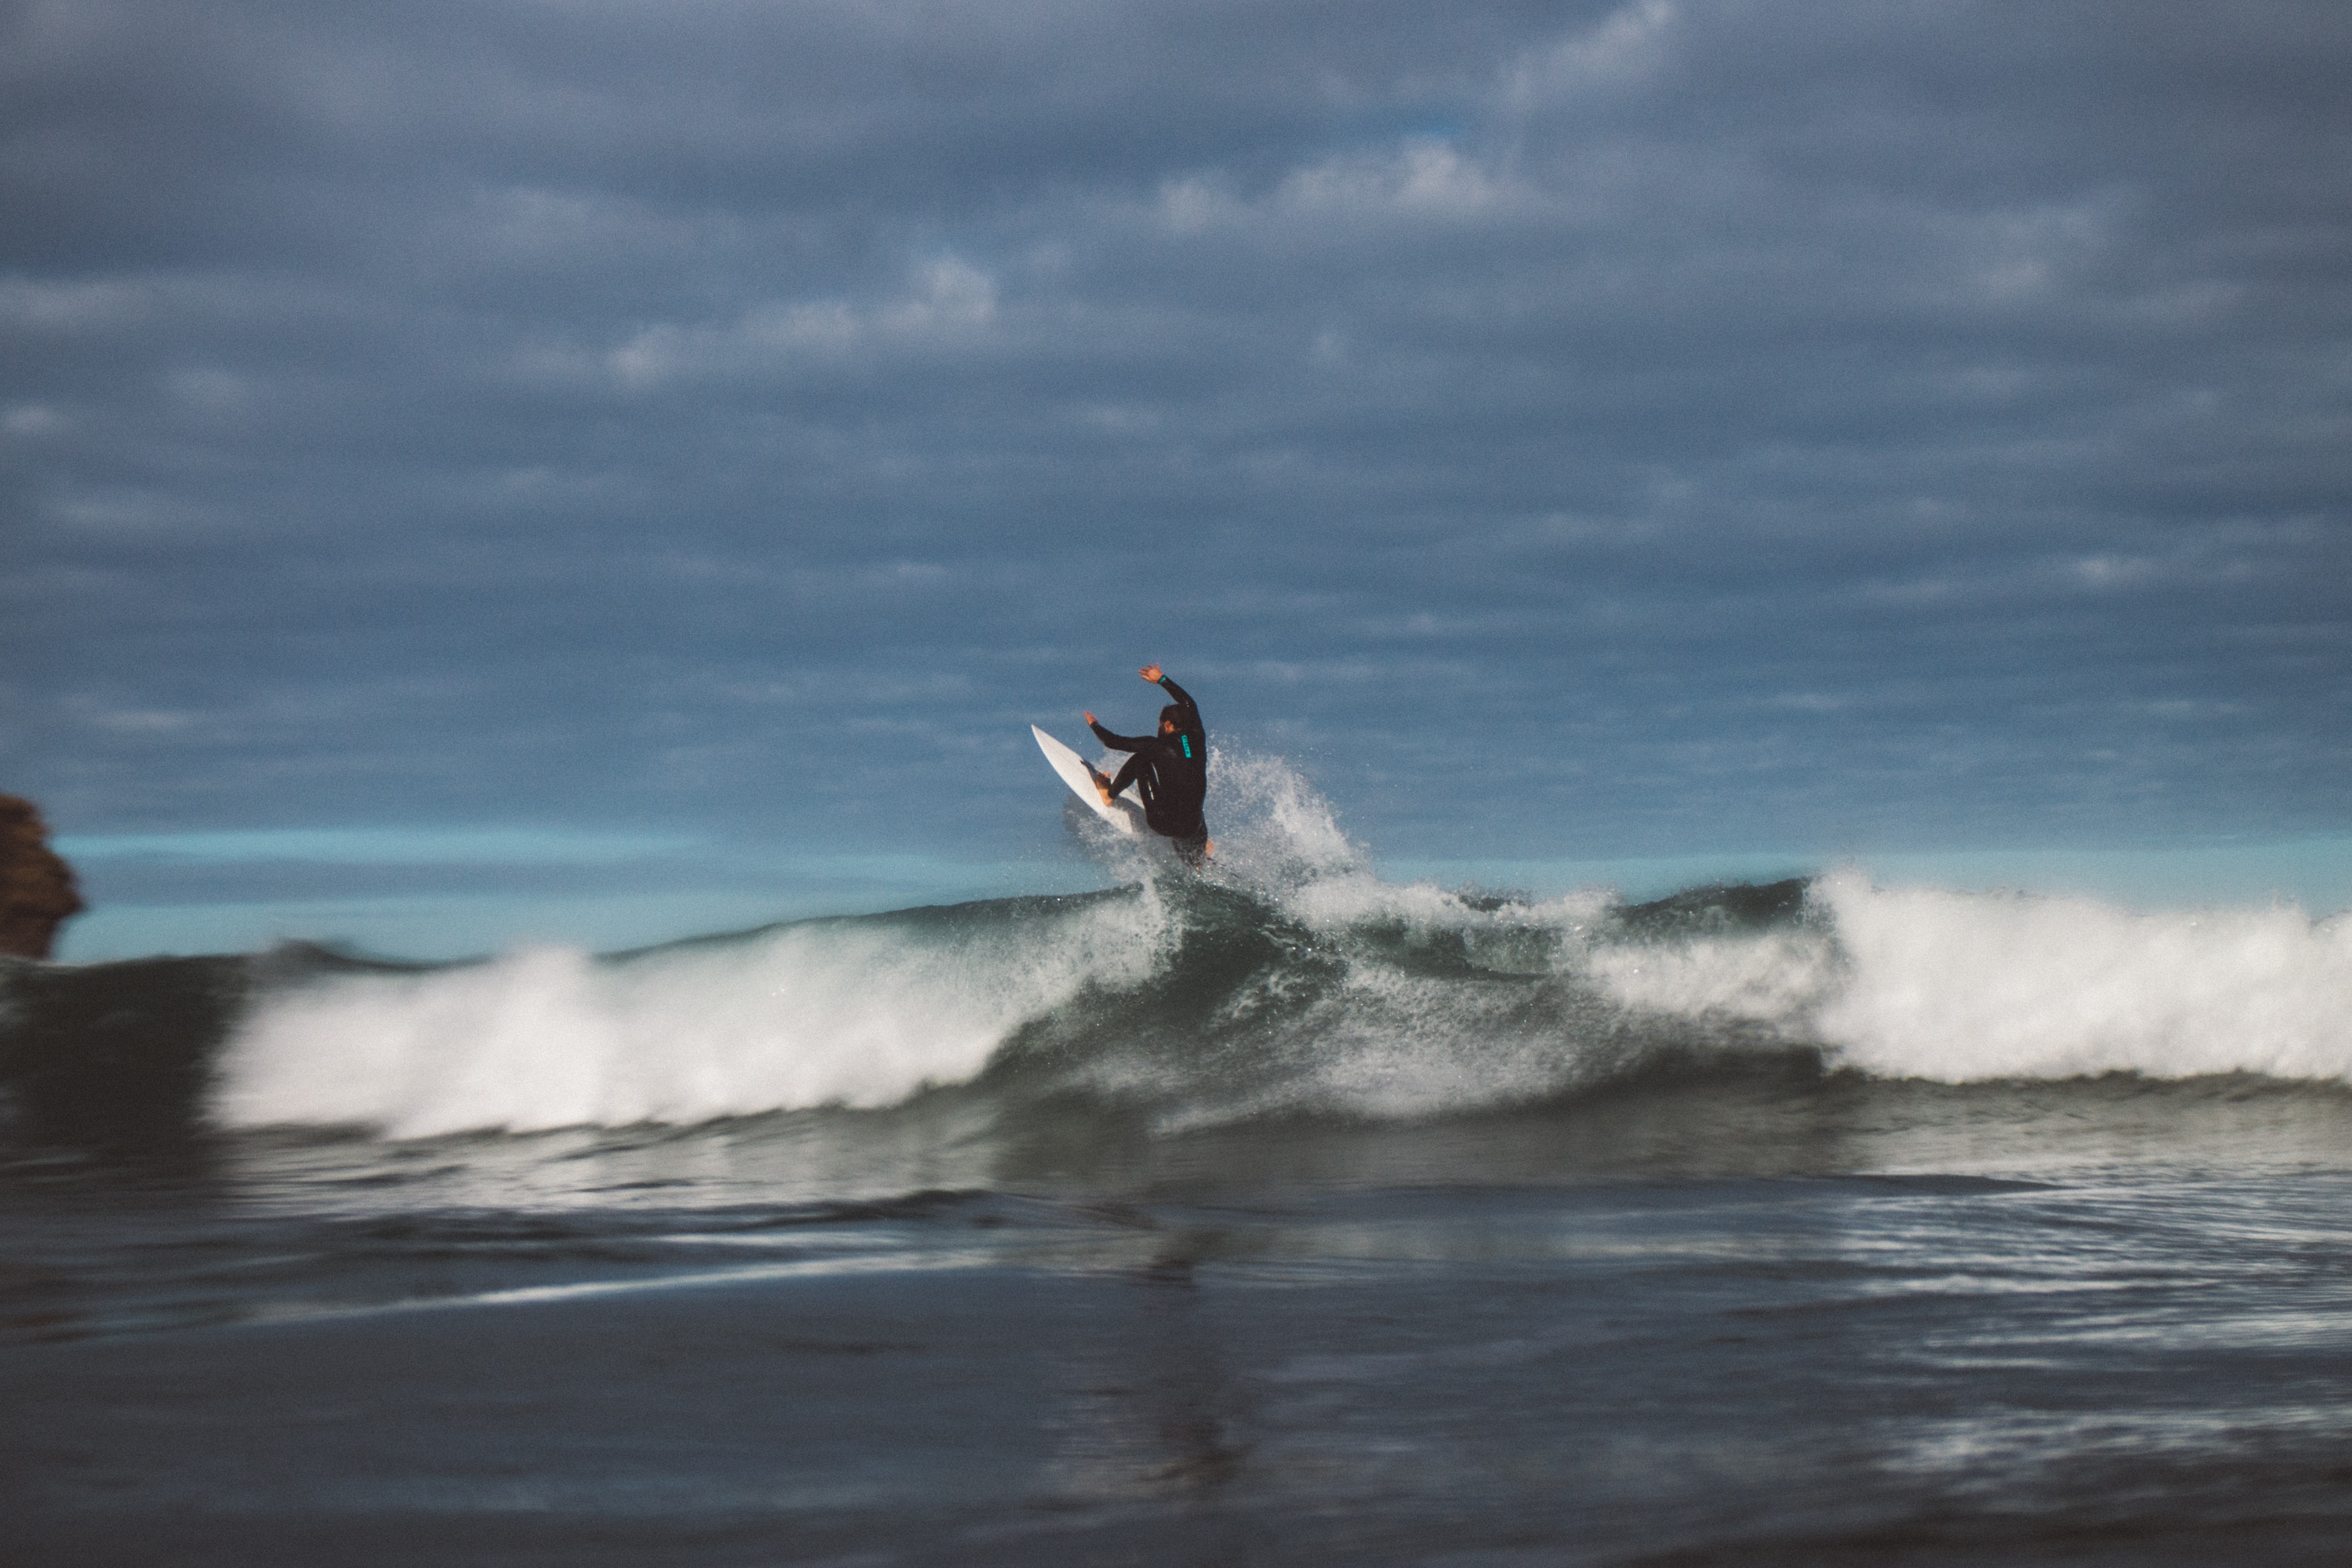 A man riding a wave with a surfboard in Piha, New Zealand